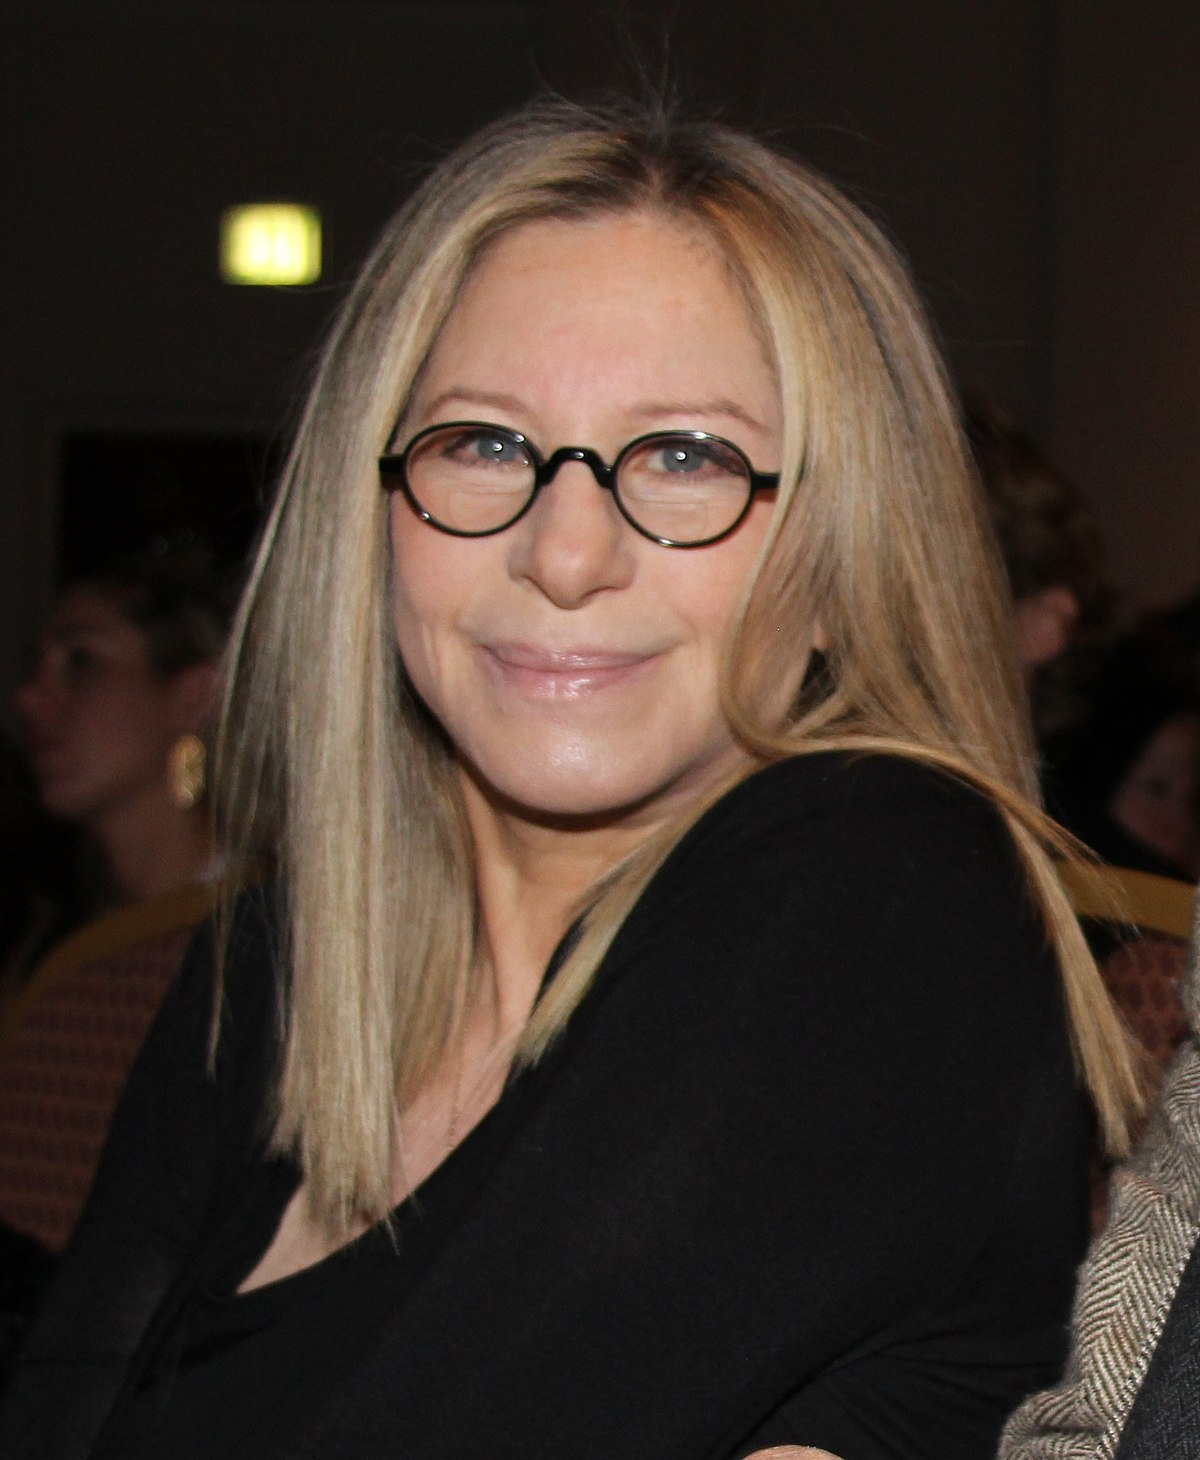 Barbra streisand wikipedia for Miglior manuale fotografia